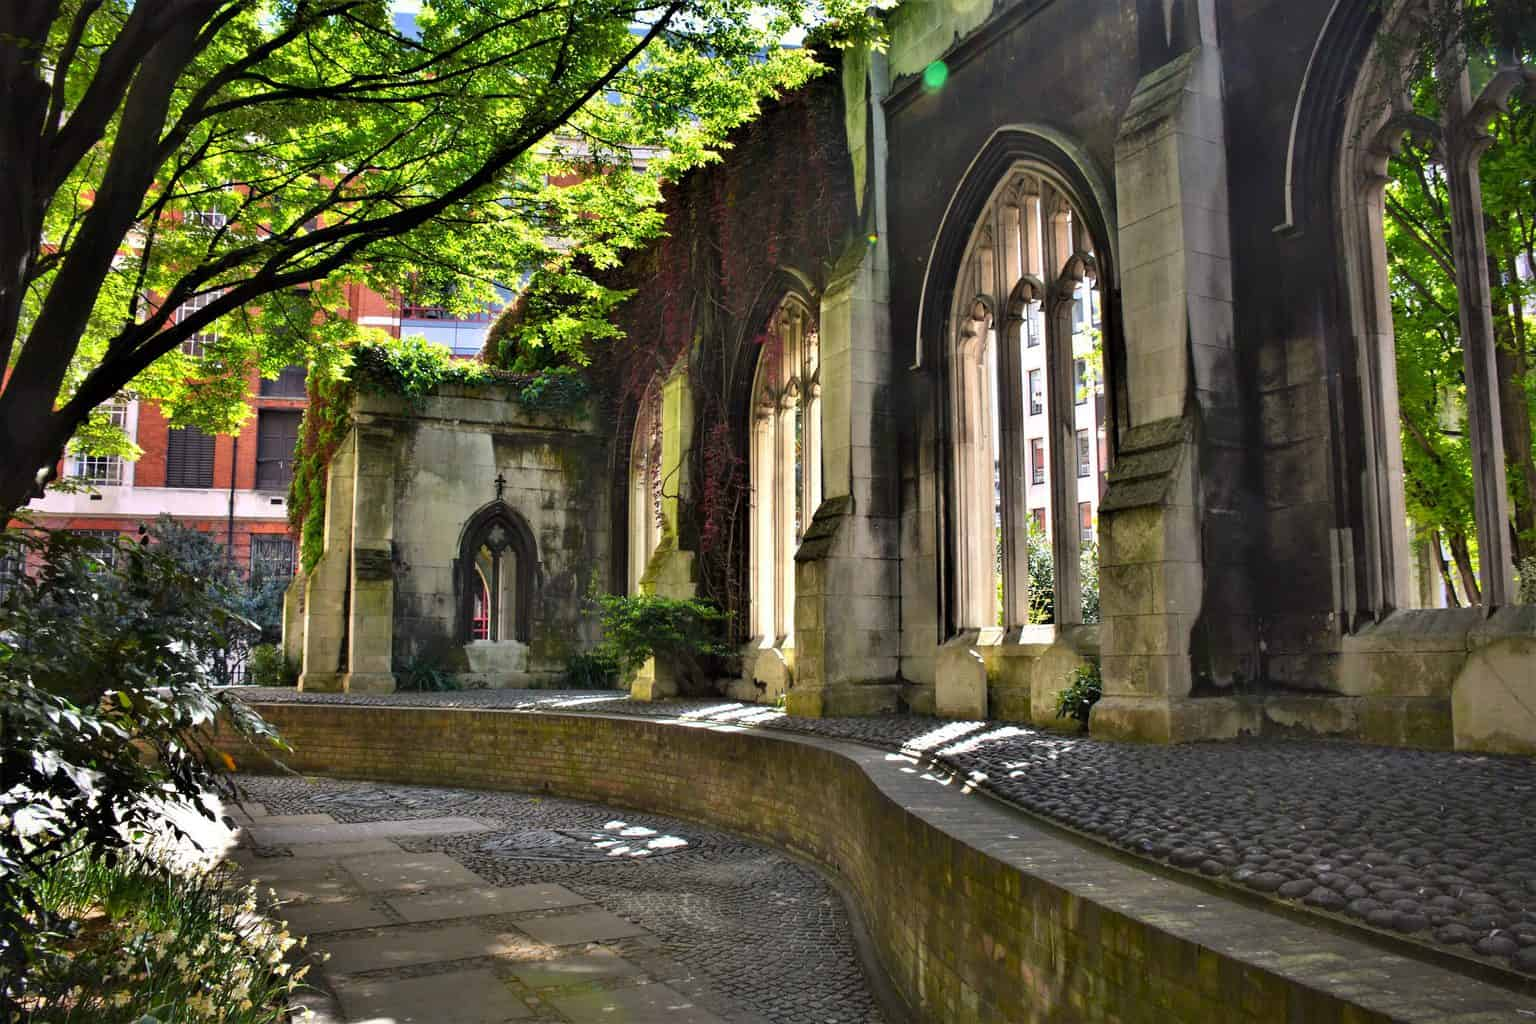 The haunting beautiful ruins of St. Dunstan in the East, one of the most unusual things to do in London.